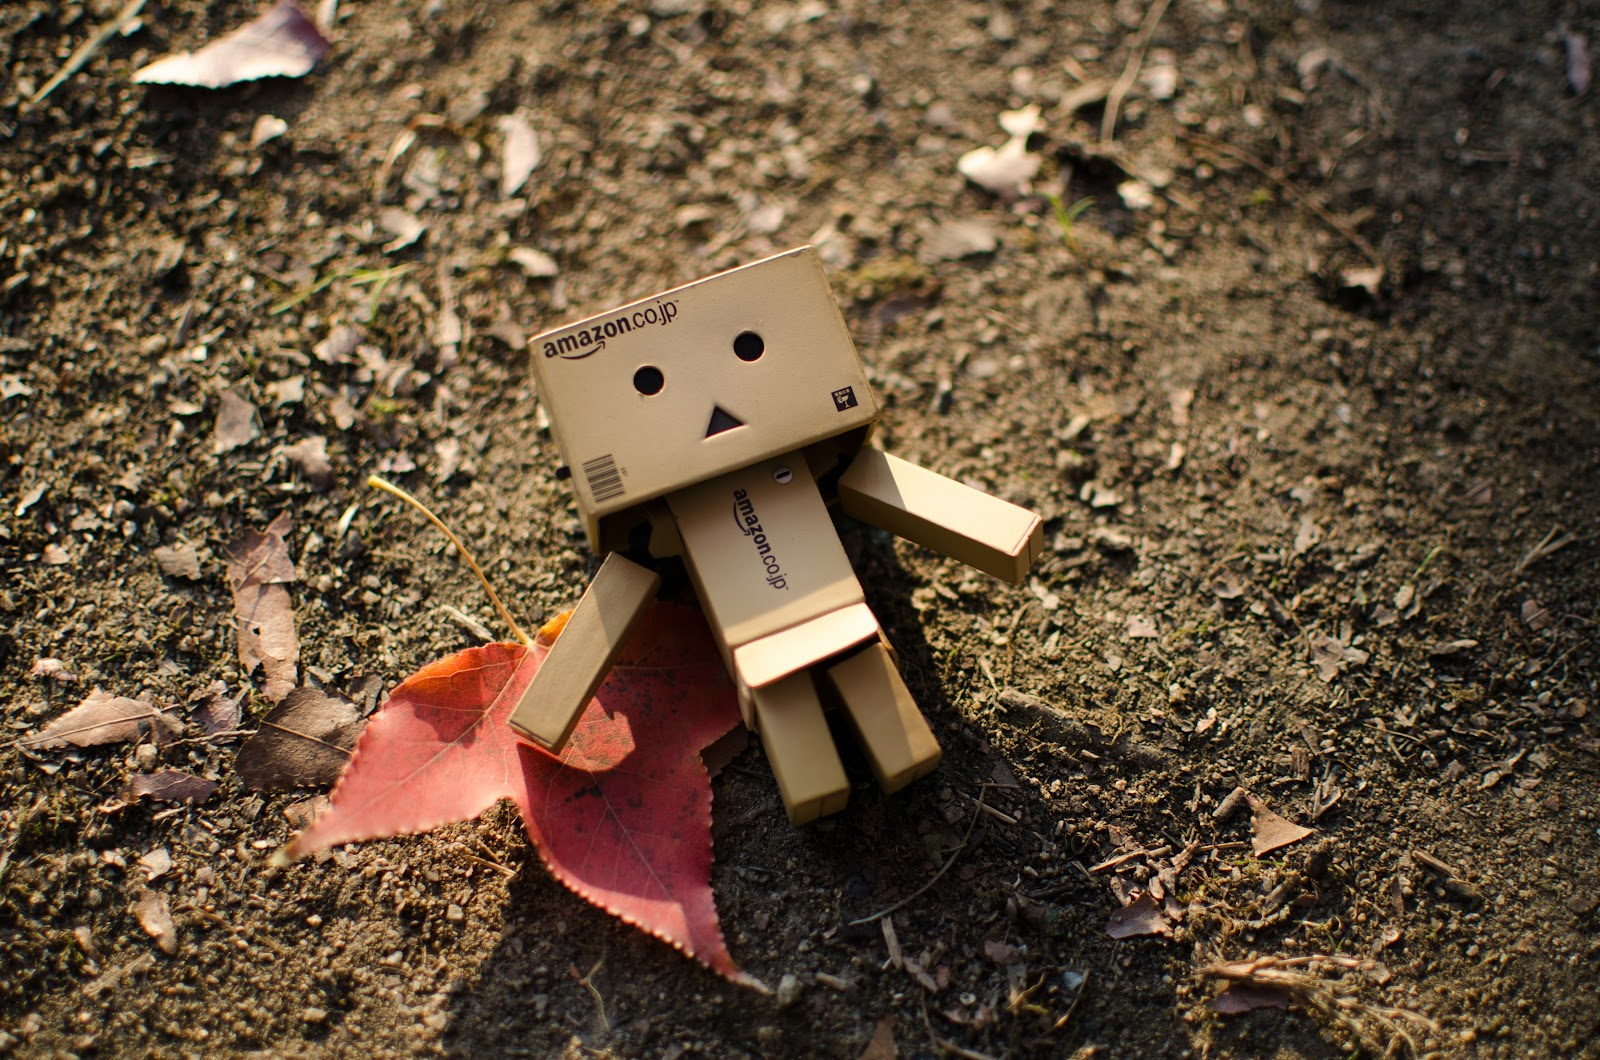 This is a small, unanimated robot lying on the ground. This is a DIY homemade robot created with cardboard Amazon boxes.